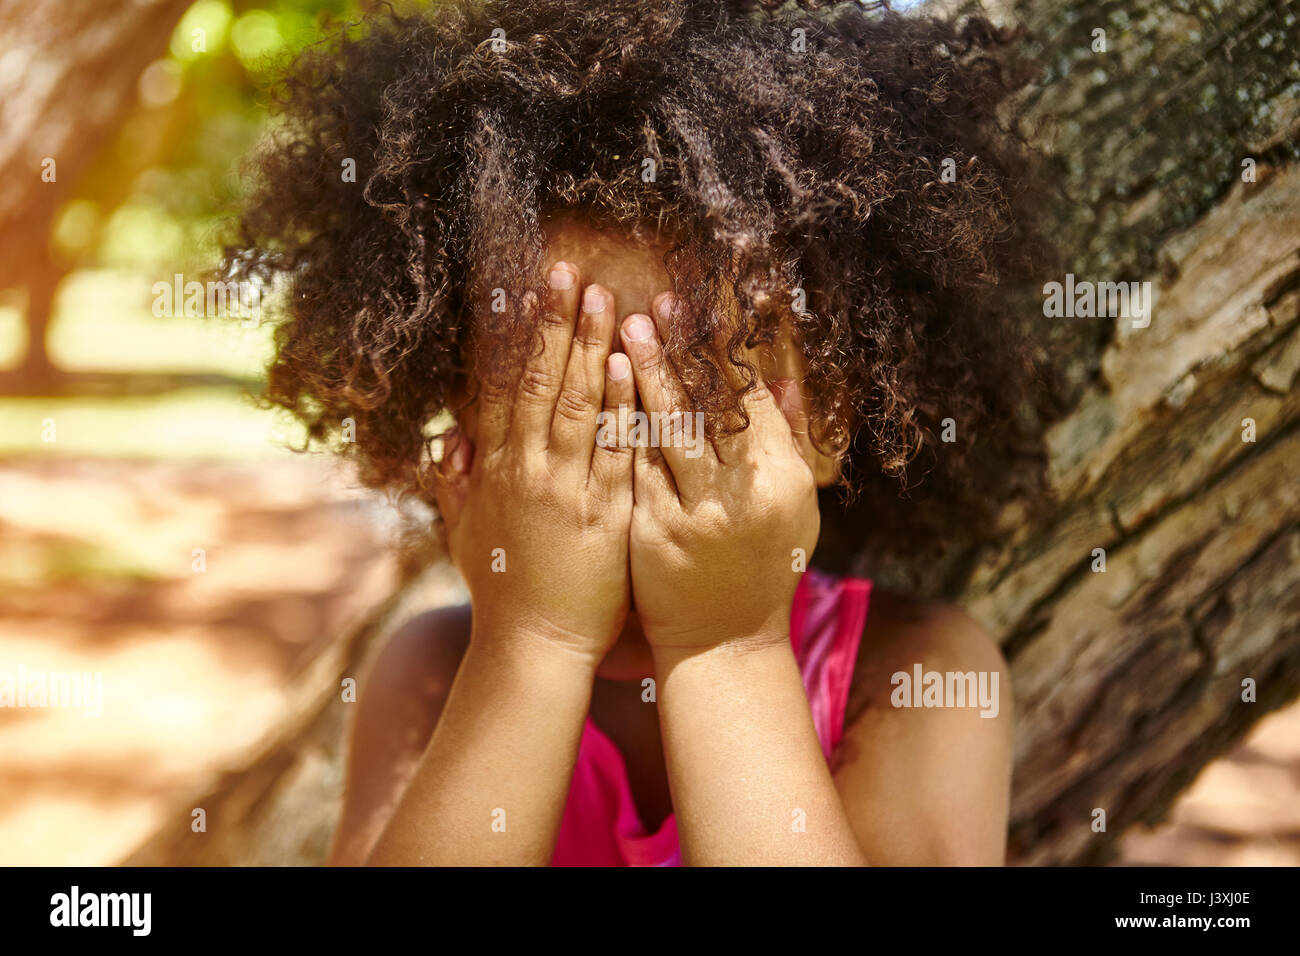 Young girl standing outdoors, covering face with hands - Stock Image